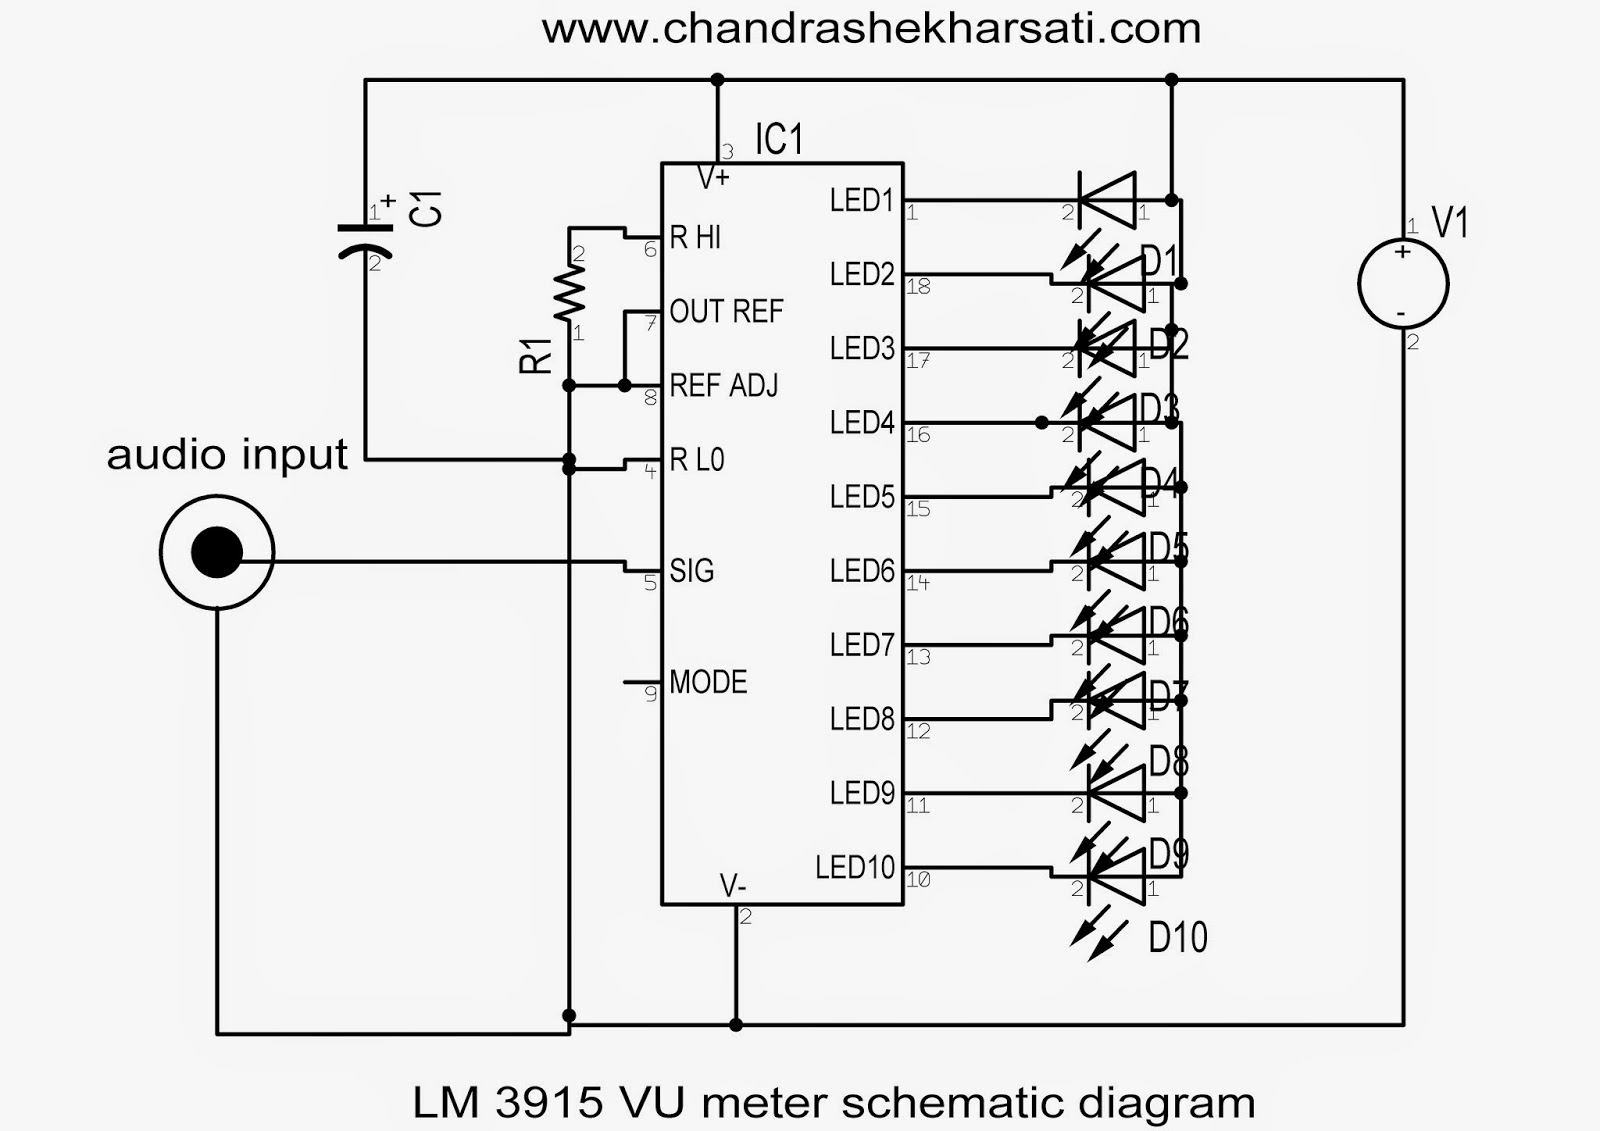 3915 Vu Meter Schematic Best Electrical Circuit Wiring Diagram Project By Lm35 And Lm3914circuit Schematics Diagrams Projects